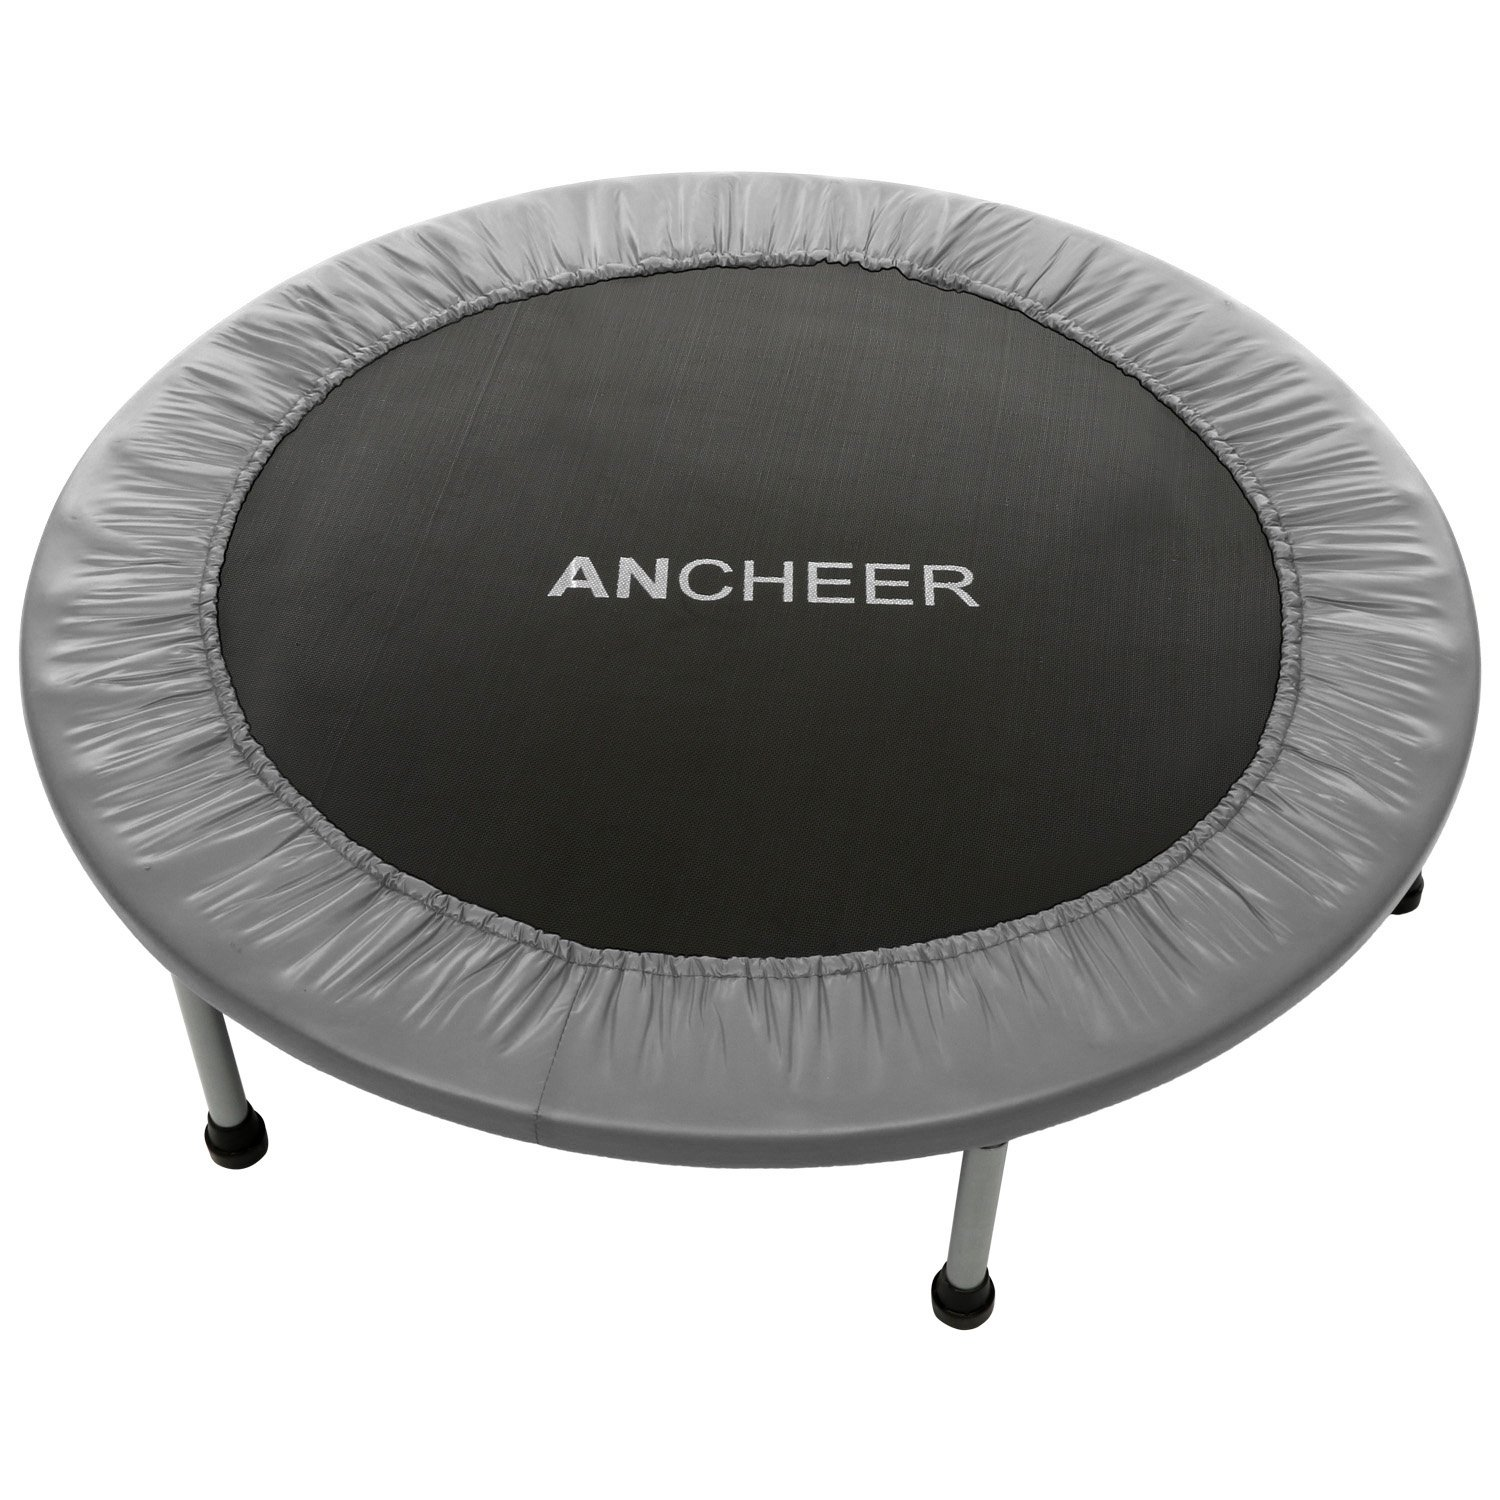 ANCHEER Max Load 220lbs Rebounder Trampoline with Safety Pad for Indoor Garden Workout Cardio Training (2 Sizes: 38 inch / 40 inch, Two Modes: Folding/Not Folding) (Red, 40inch - Folding one time)